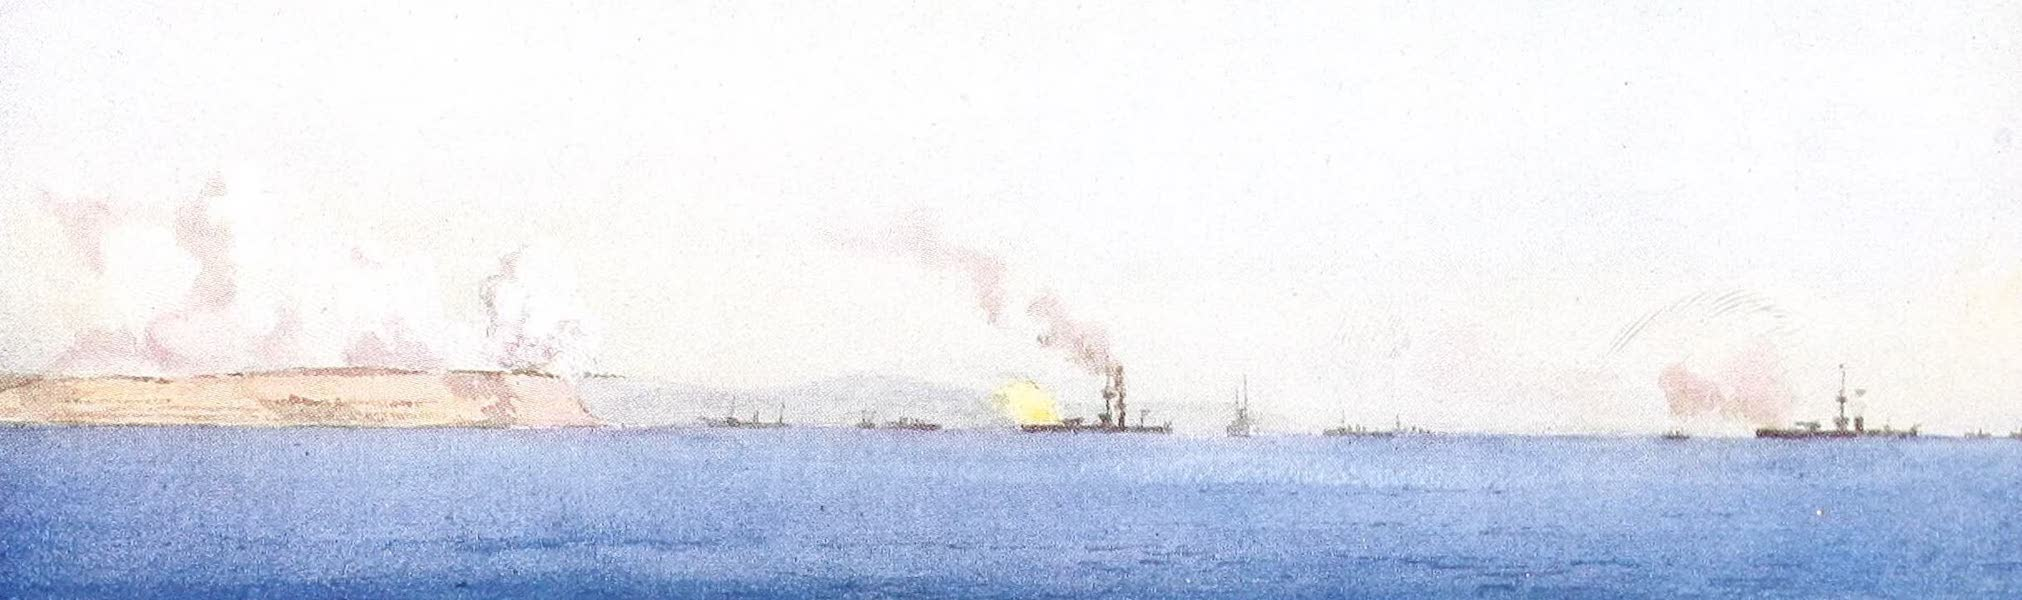 The Dardanelles : Colour Sketches from Gallipoli - Monitors Shelling Yeni Sher Village and Asiatic Batteries (1915)